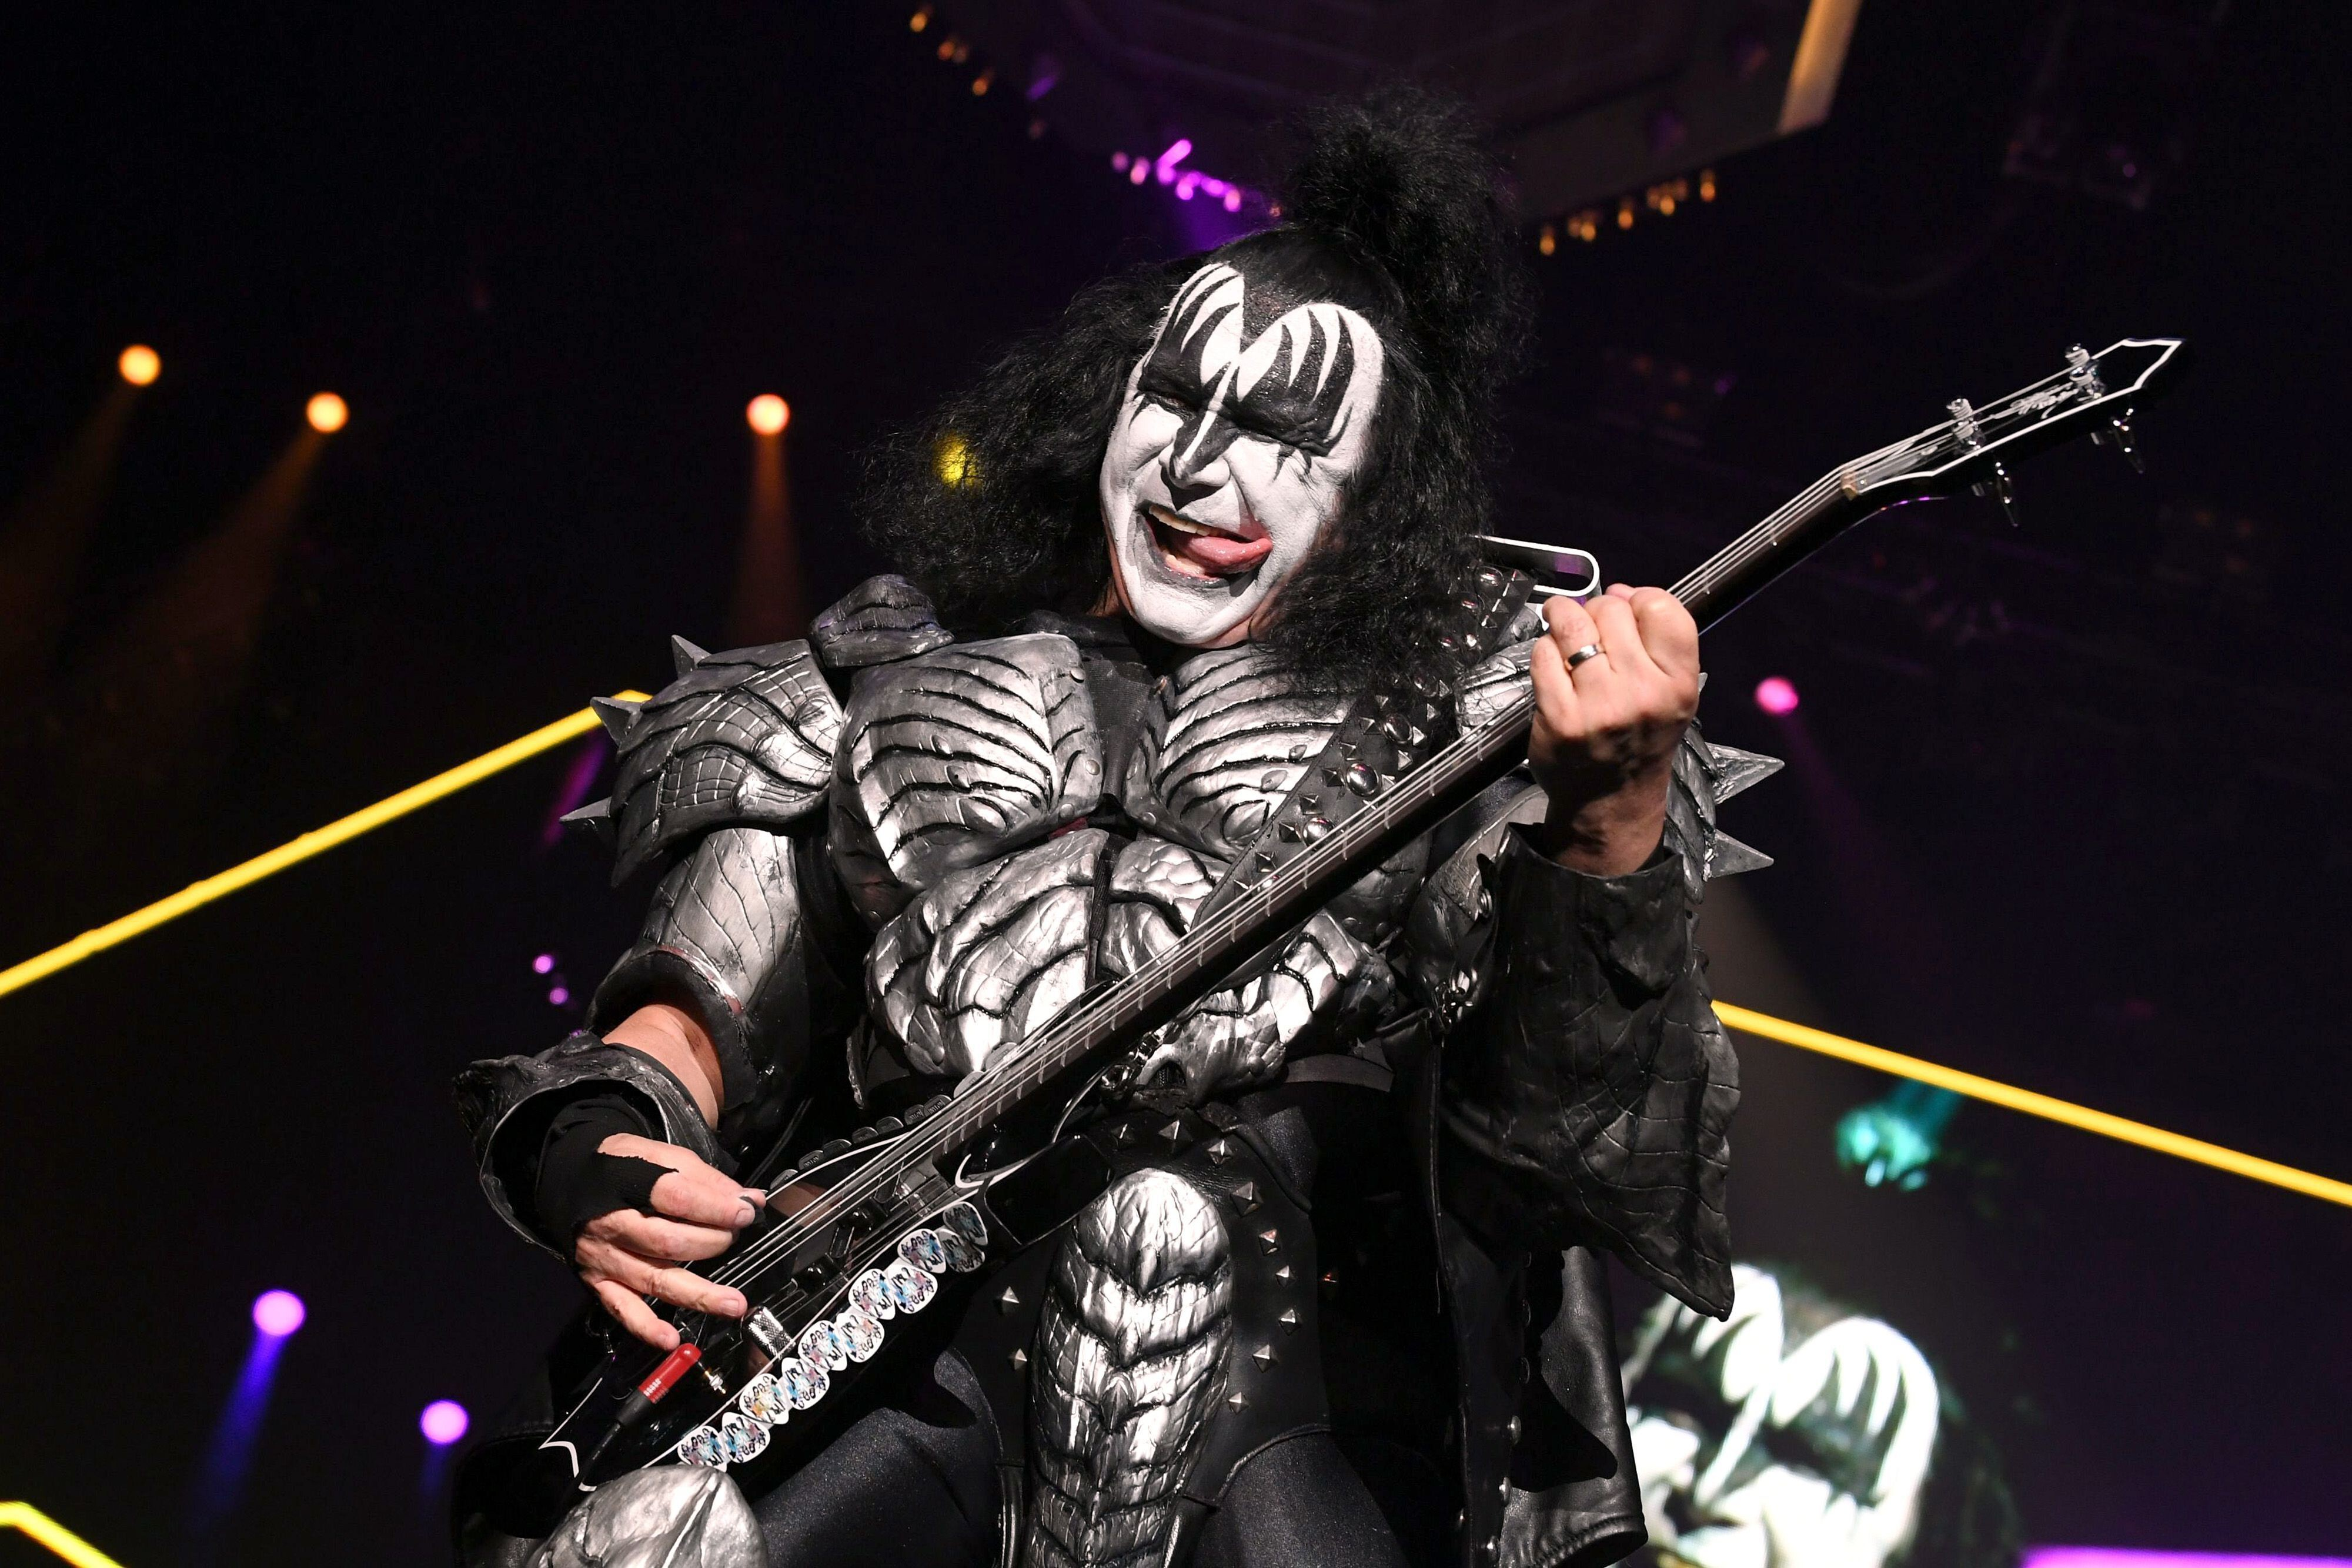 When Gene Simmons isn't performing with KISS, you can find him painting